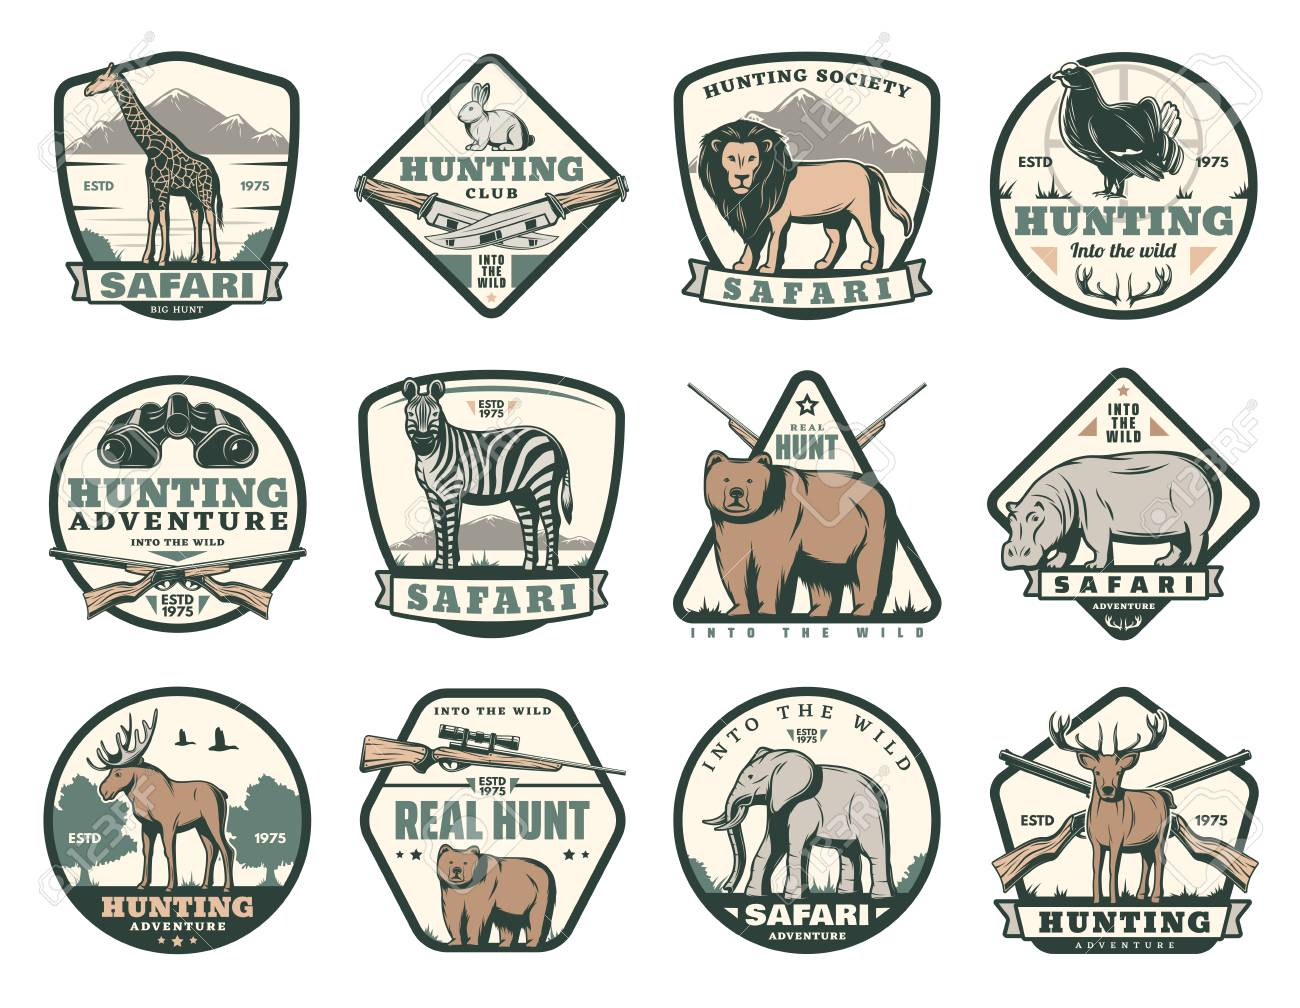 Hunting club icons of wild animals for African safari and open